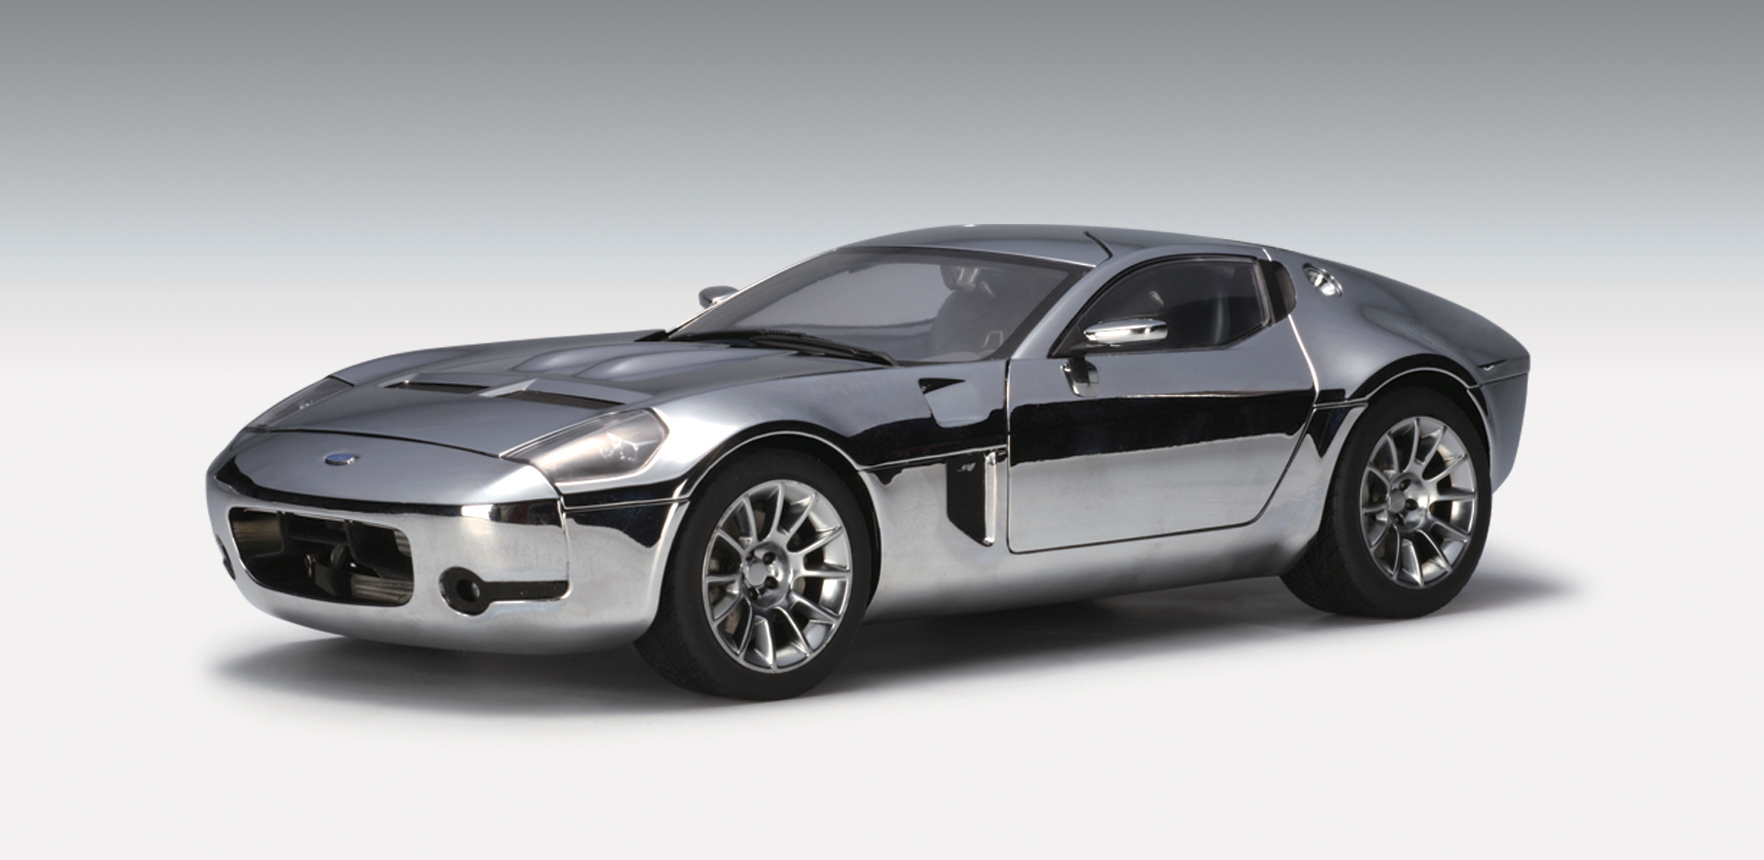 2005 Ford Shelby GR1 Concept photo - 3